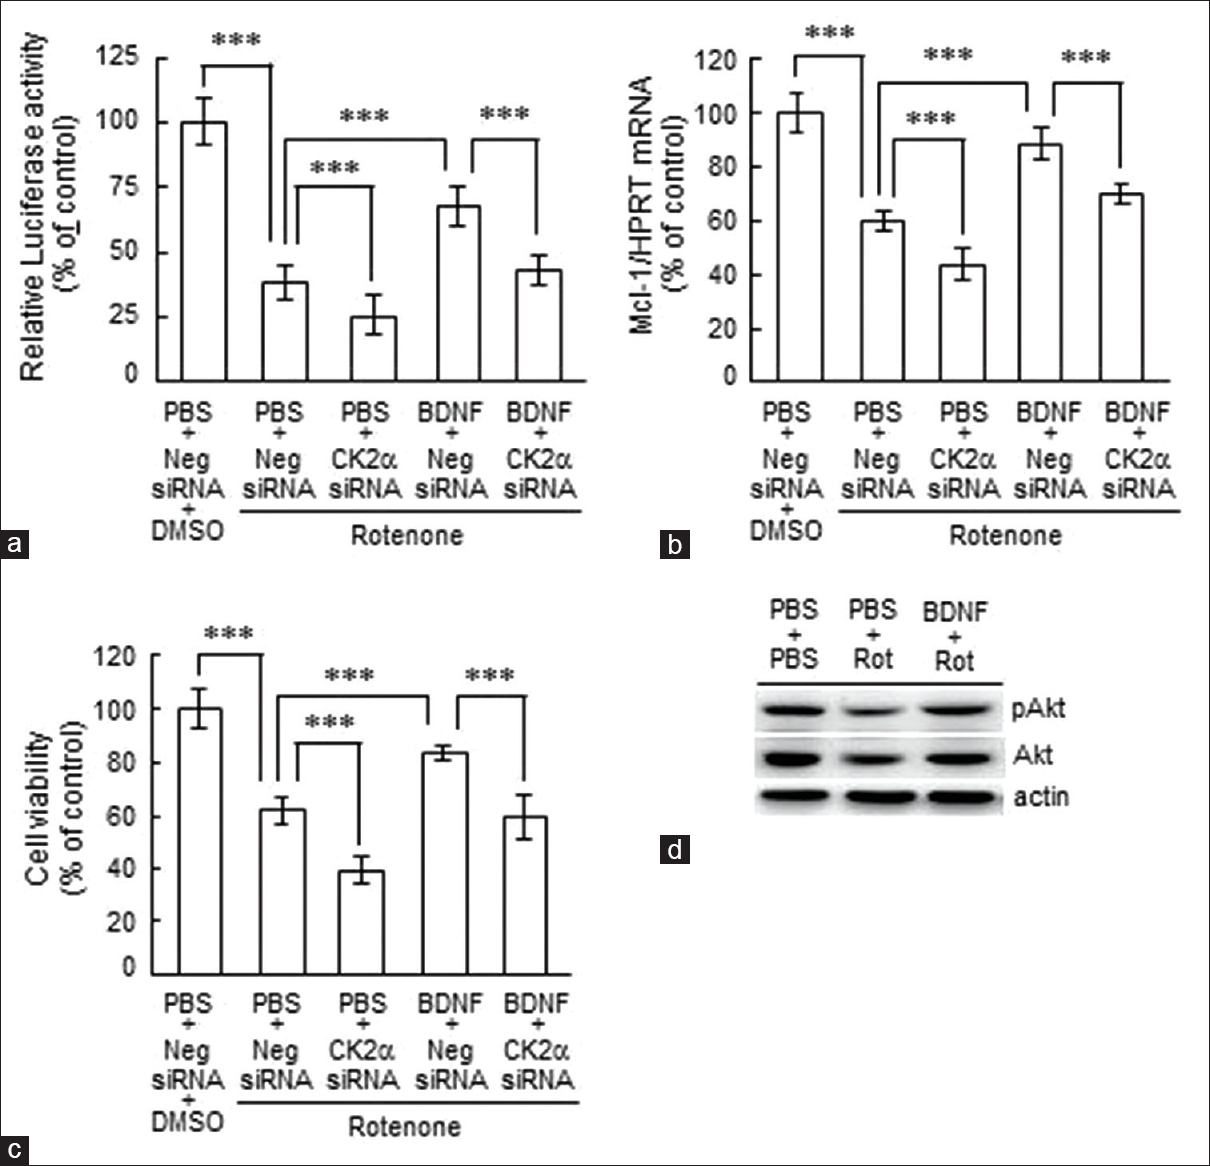 Figure 4: Blockade of CK2&#945; suppressed the protective effects of brain-derived neurotrophic factor on serum response element-mediated reporter expression, <i>Mcl-1</i> mRNA expression, and cell viability. PC12 cells (2 &#215; 10<sup>5</sup>/cm<sup>2</sup>) were transfected with 16 pmole of CK2&#945; siRNA for 48 h, followed by 10 ng/mL of brain-derived neurotrophic factor treatment for 6 h. The cells then received 500 nM of rotenone treatment for 24 h. The cells were harvested for (a) a luciferase activity assay by using the Dual-Glo Luciferase Assay System, (b) <i>Mcl-1</i> mRNA by using real-time quantitative polymerase chain reaction, (c) cell viability determination by using an 3-(4,5-dimethythiazol-2-yl)-2,5-diphenyl tetrazolium bromide assay (<i>n</i> &#61; 9 in each group from three independent batches of cultures). (d) The protein profile of Akt phosphorylation at Ser473 by the Western blot analysis. Data are expressed as mean &#177; standard deviation. Statistical significance was evaluated using a one-way ANOVA followed by the Newman&#8211;Kuel method. &#42;&#42;&#42;<i>P</i> &#60; 0.001